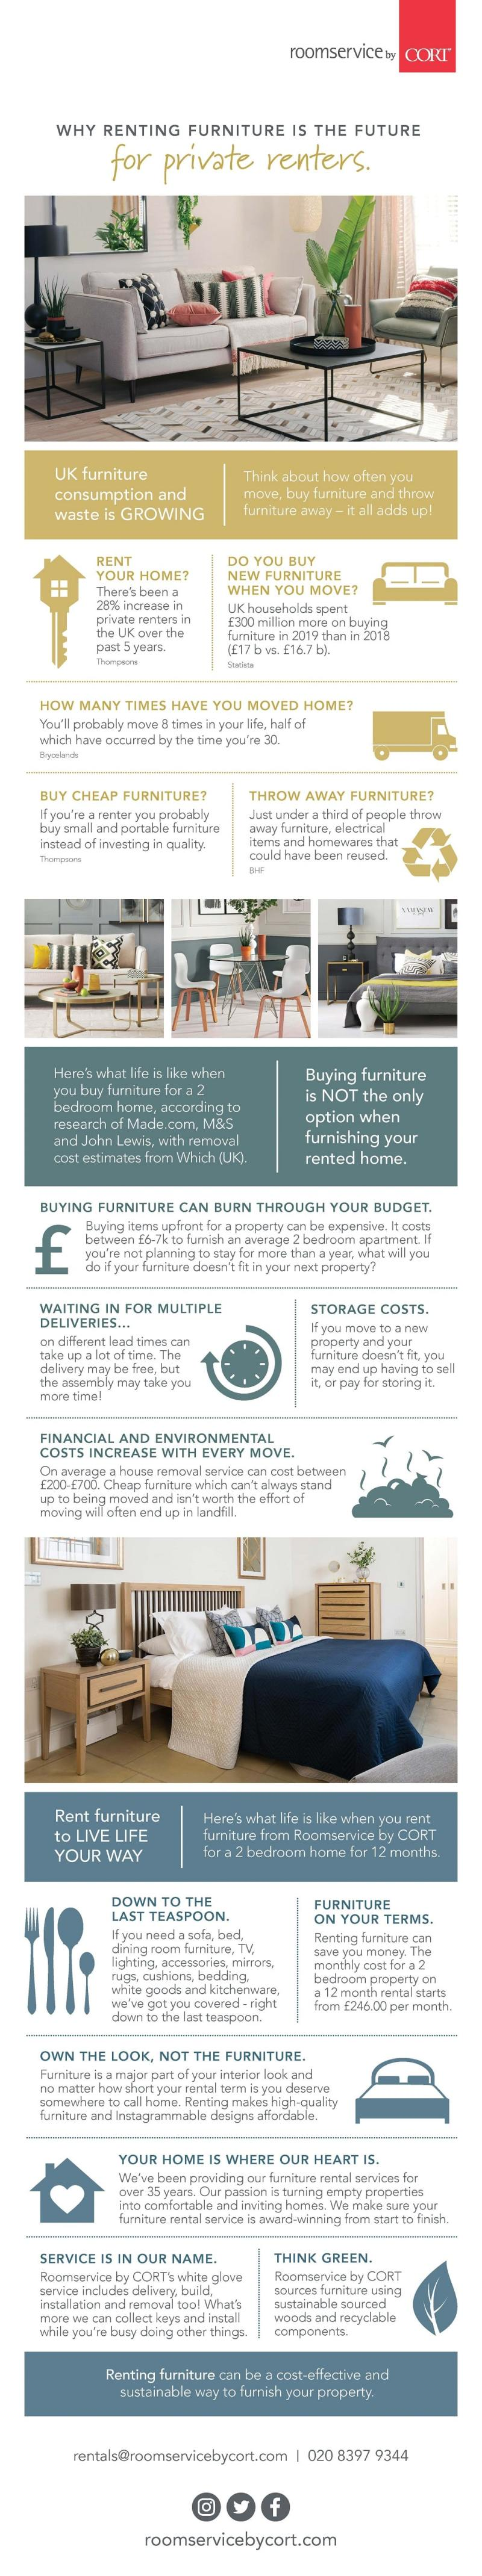 Furniture rental could be the future